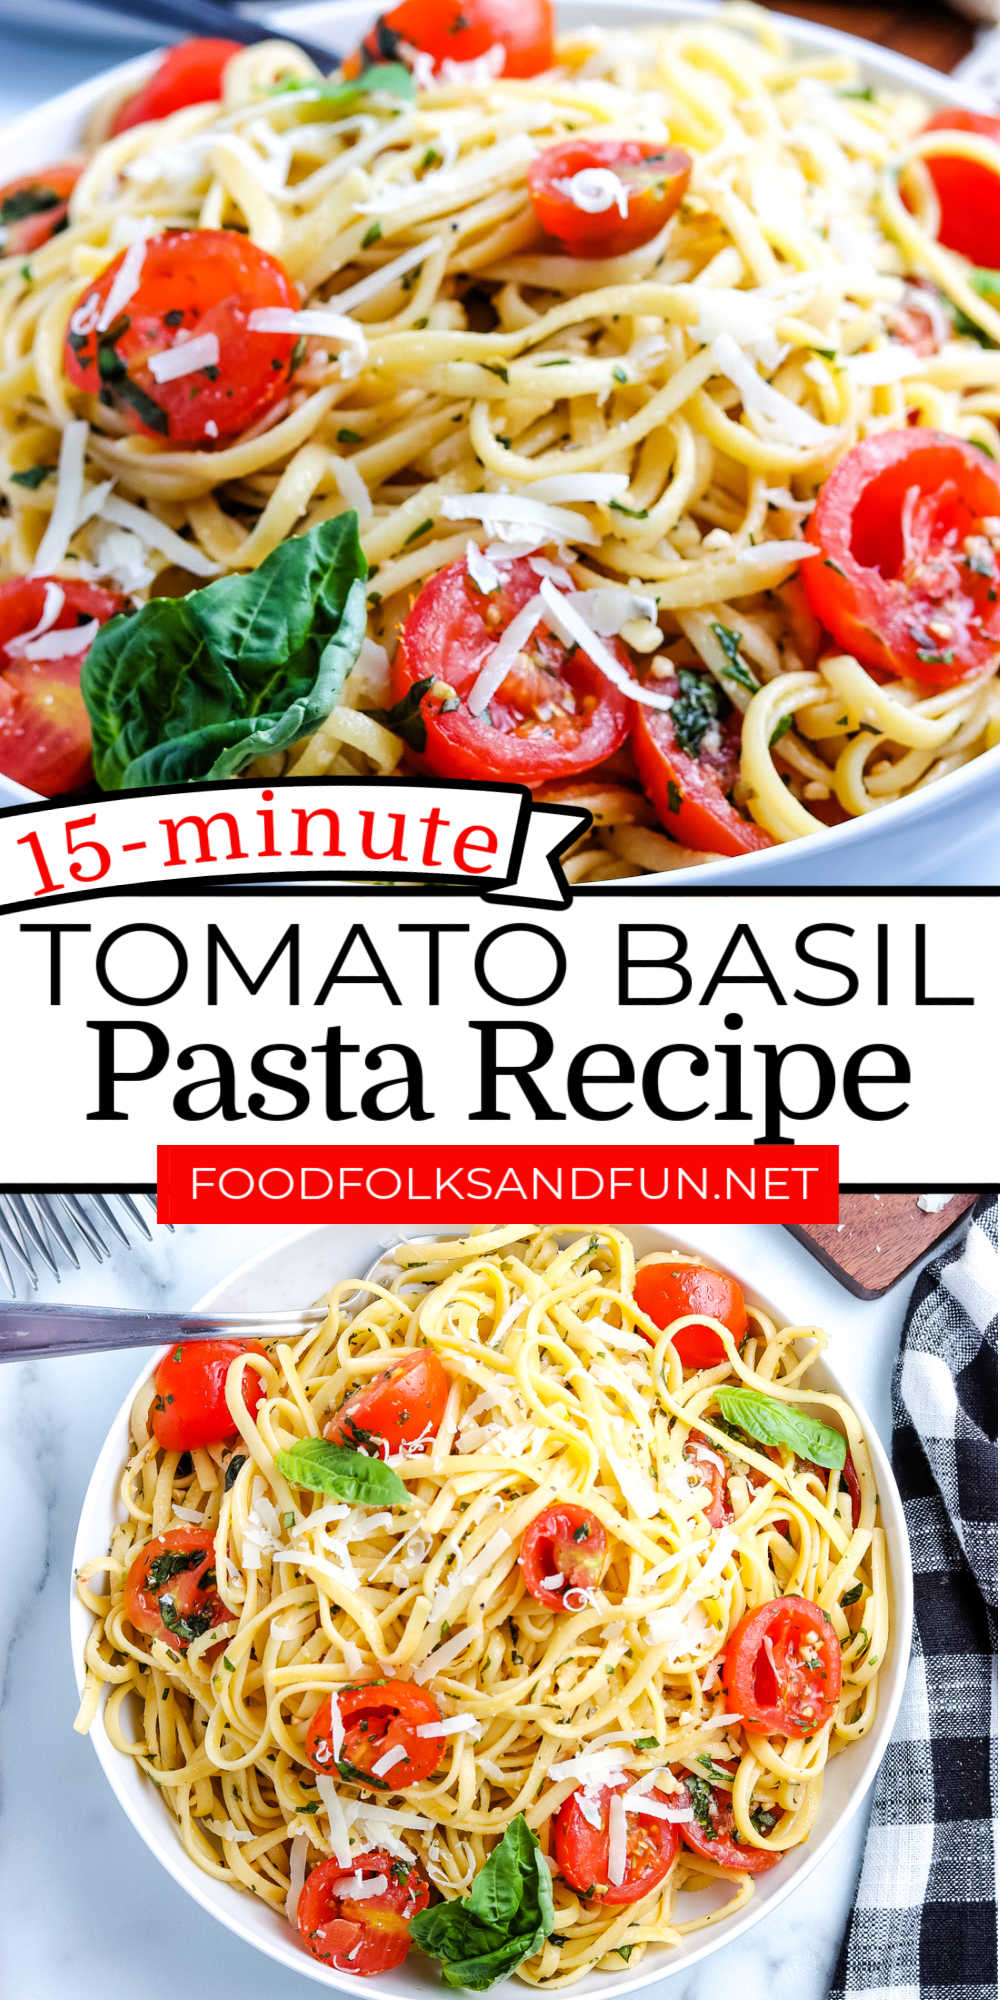 This Tomato Basil Pasta recipe is great for busy weeknights. The heat from the pasta warms the rest of the dish. 15 minutes is all you need, folks. Now, who doesn't love that?! via @foodfolksandfun